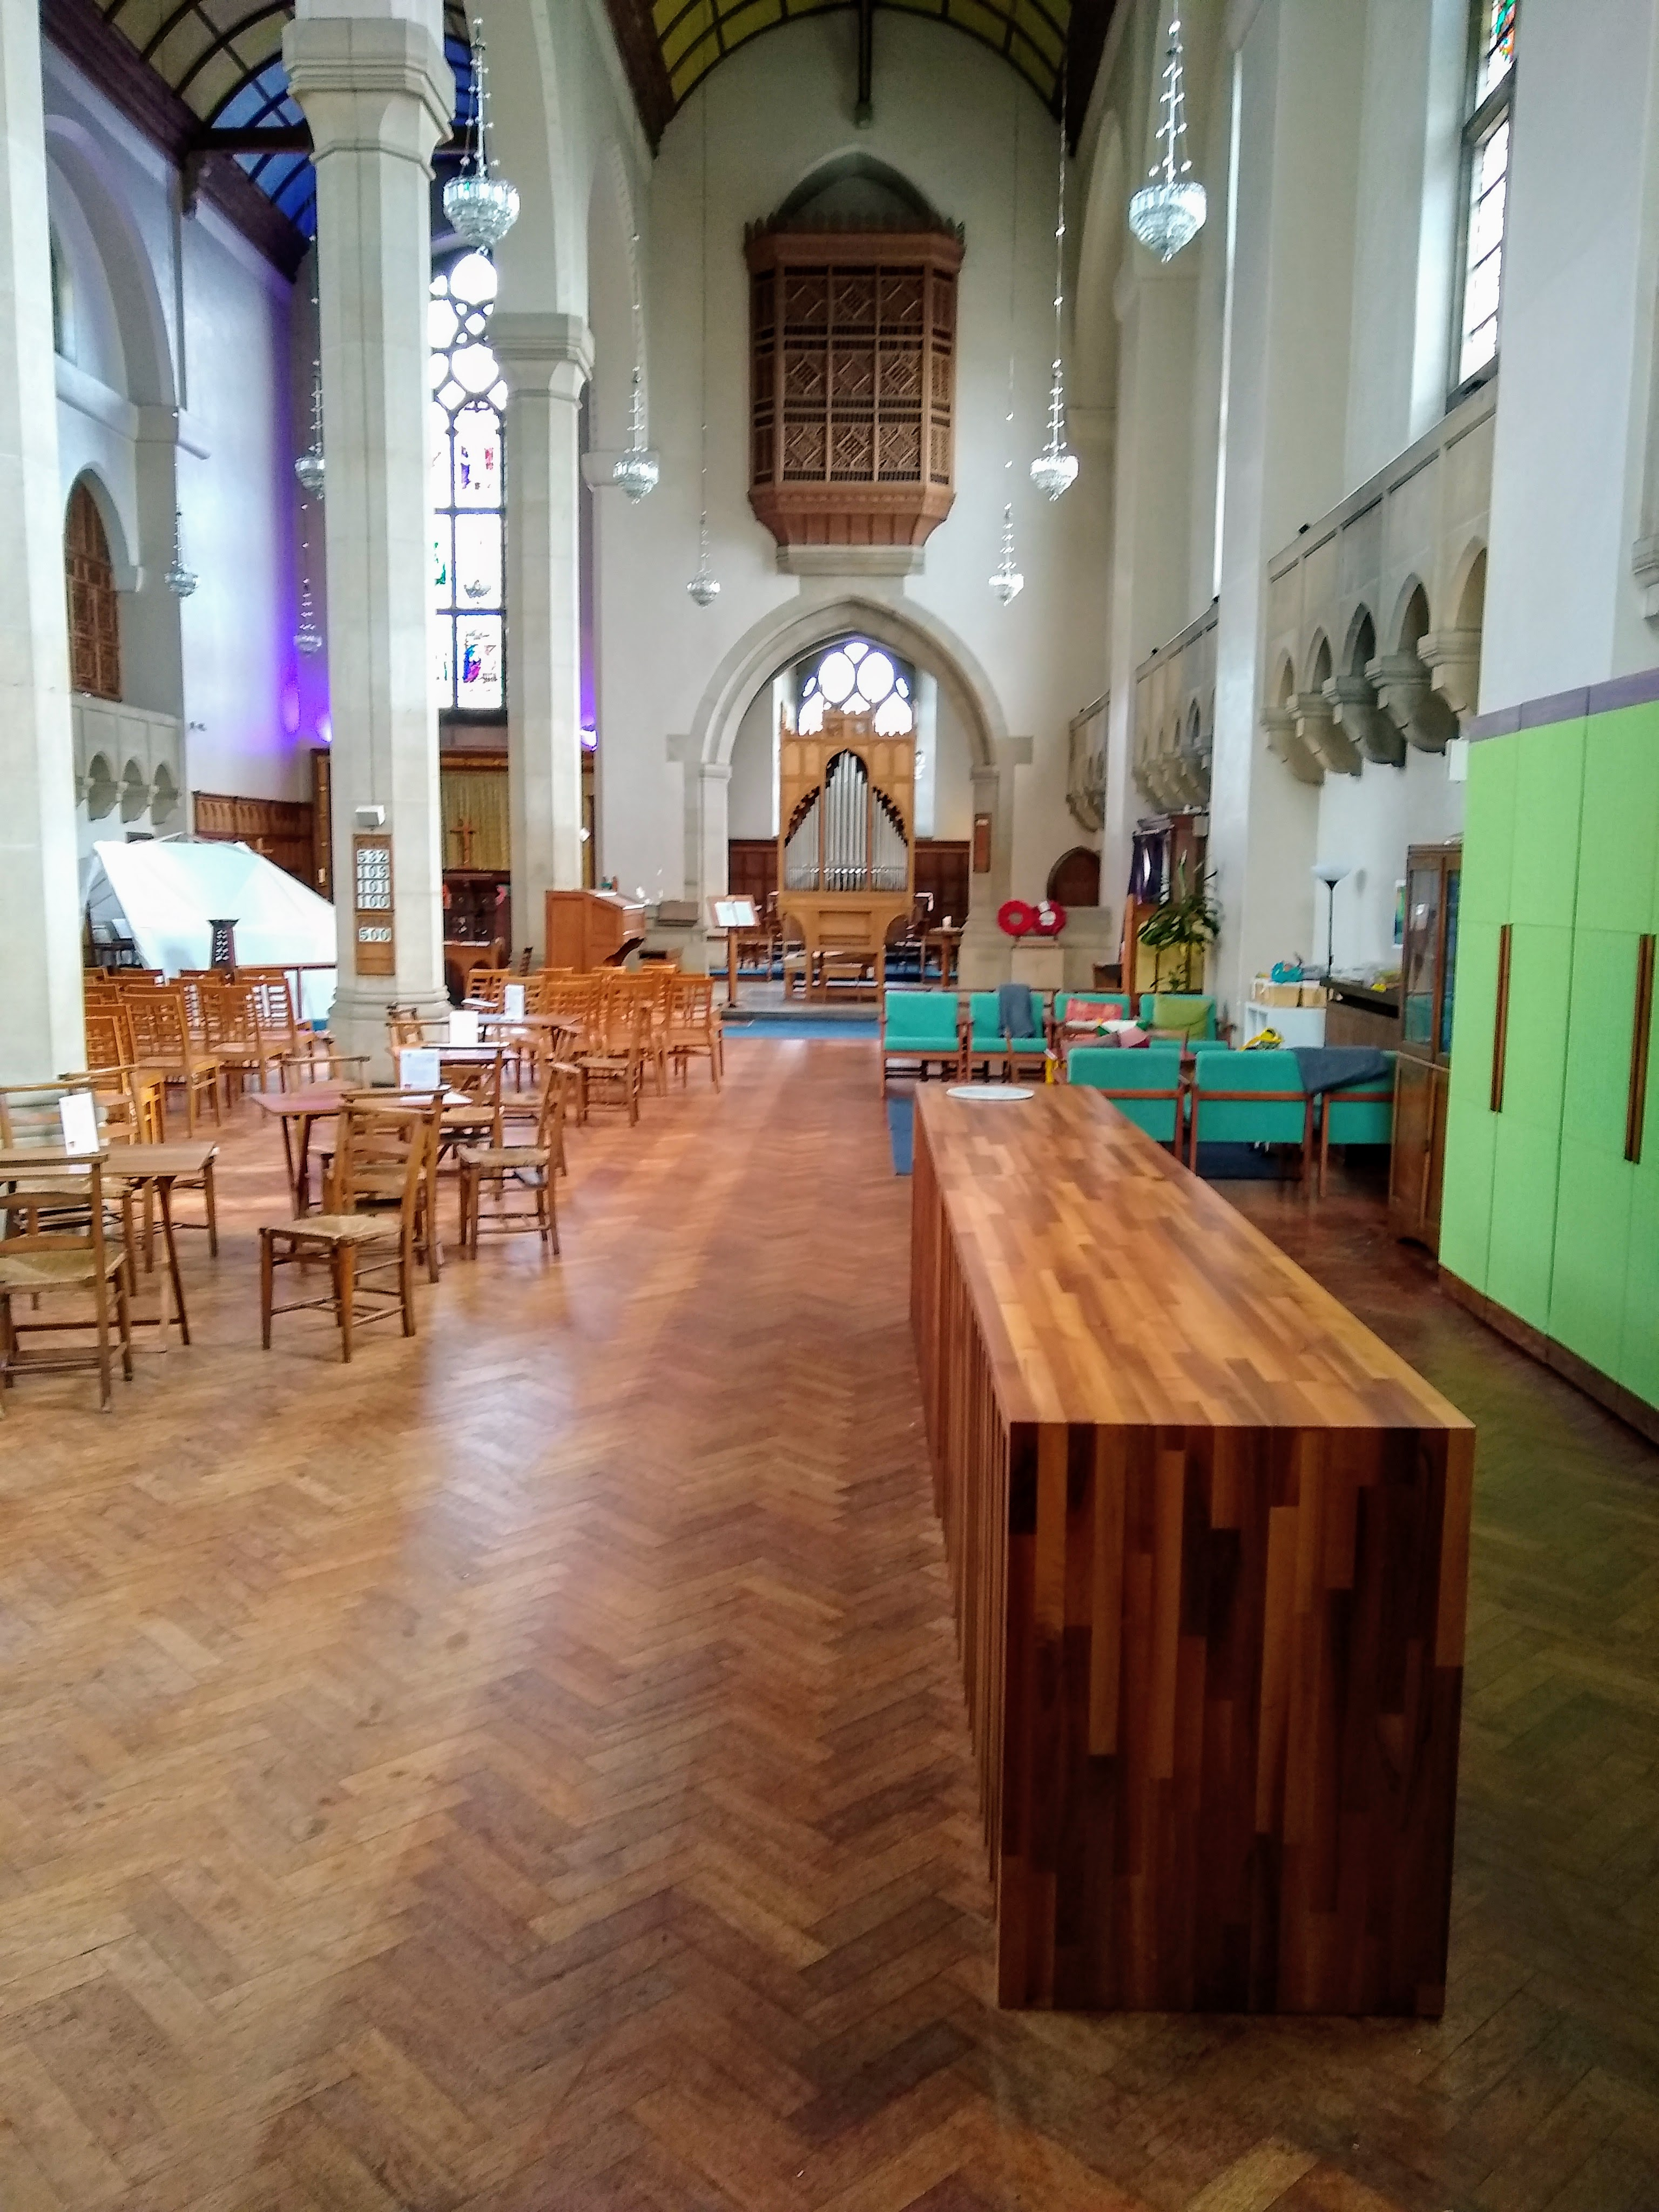 Our fabulous kitchen in the glorious J's and B's church